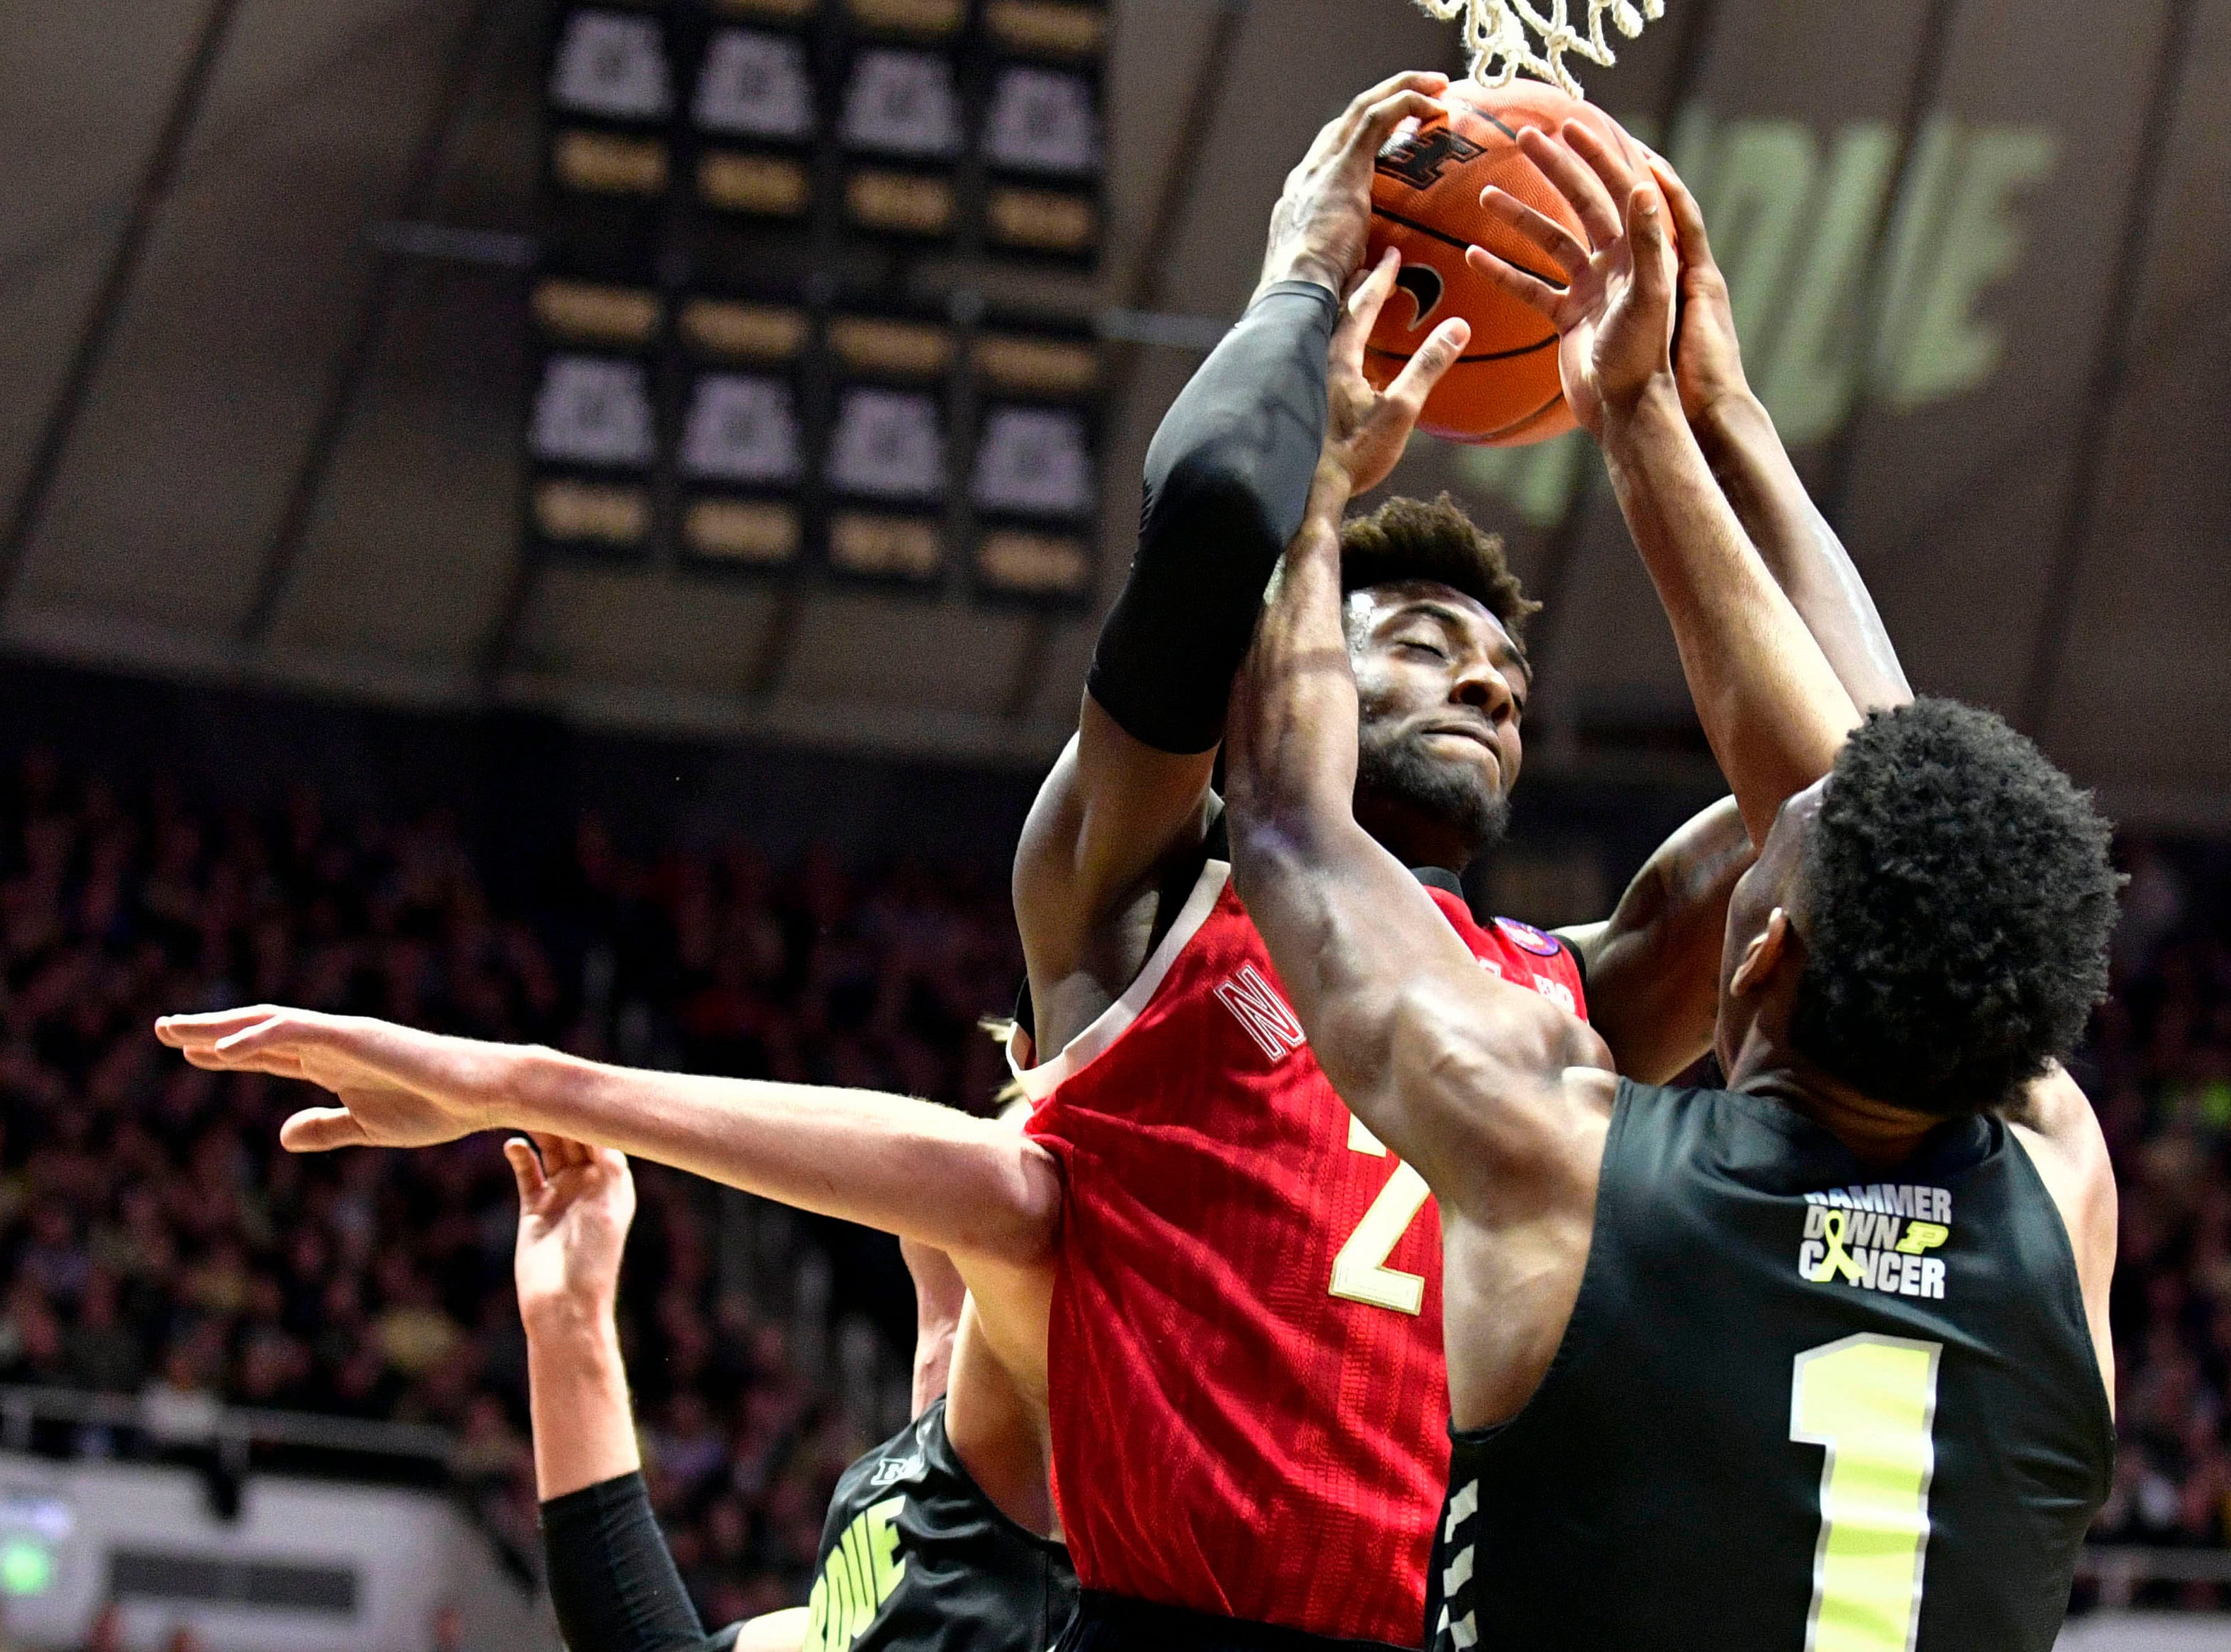 Feb 9, 2019; West Lafayette, IN, USA; Nebraska Cornhuskers guard Nana Akenten (25) fights for a rebound against Purdue Boilermakers forward Aaron Wheeler (1) during the first half of the game at Mackey Arena. Mandatory Credit: Marc Lebryk-USA TODAY Sports